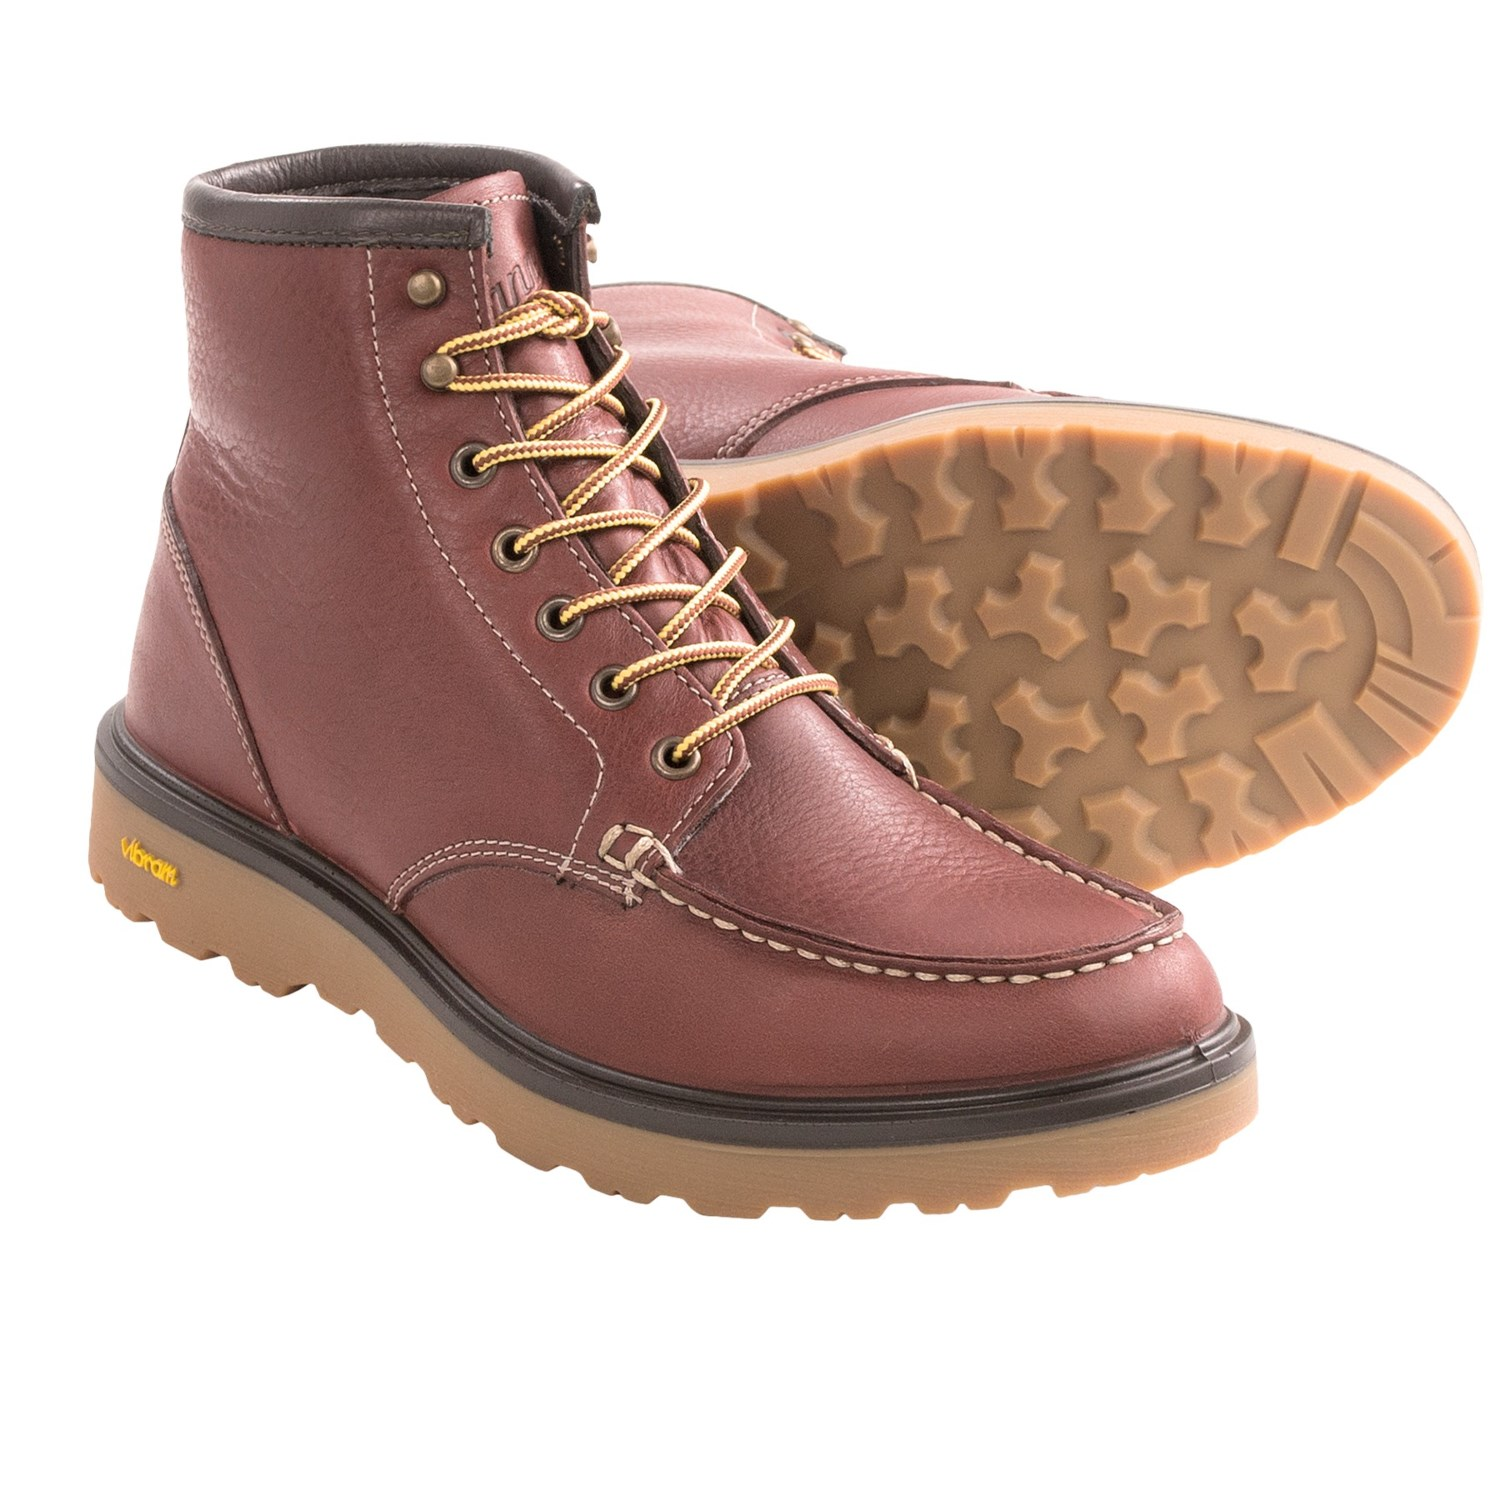 danner-lace-work-boots-moc-toe-for-men-in-brown~p~7985u_01~1500.2.jpg